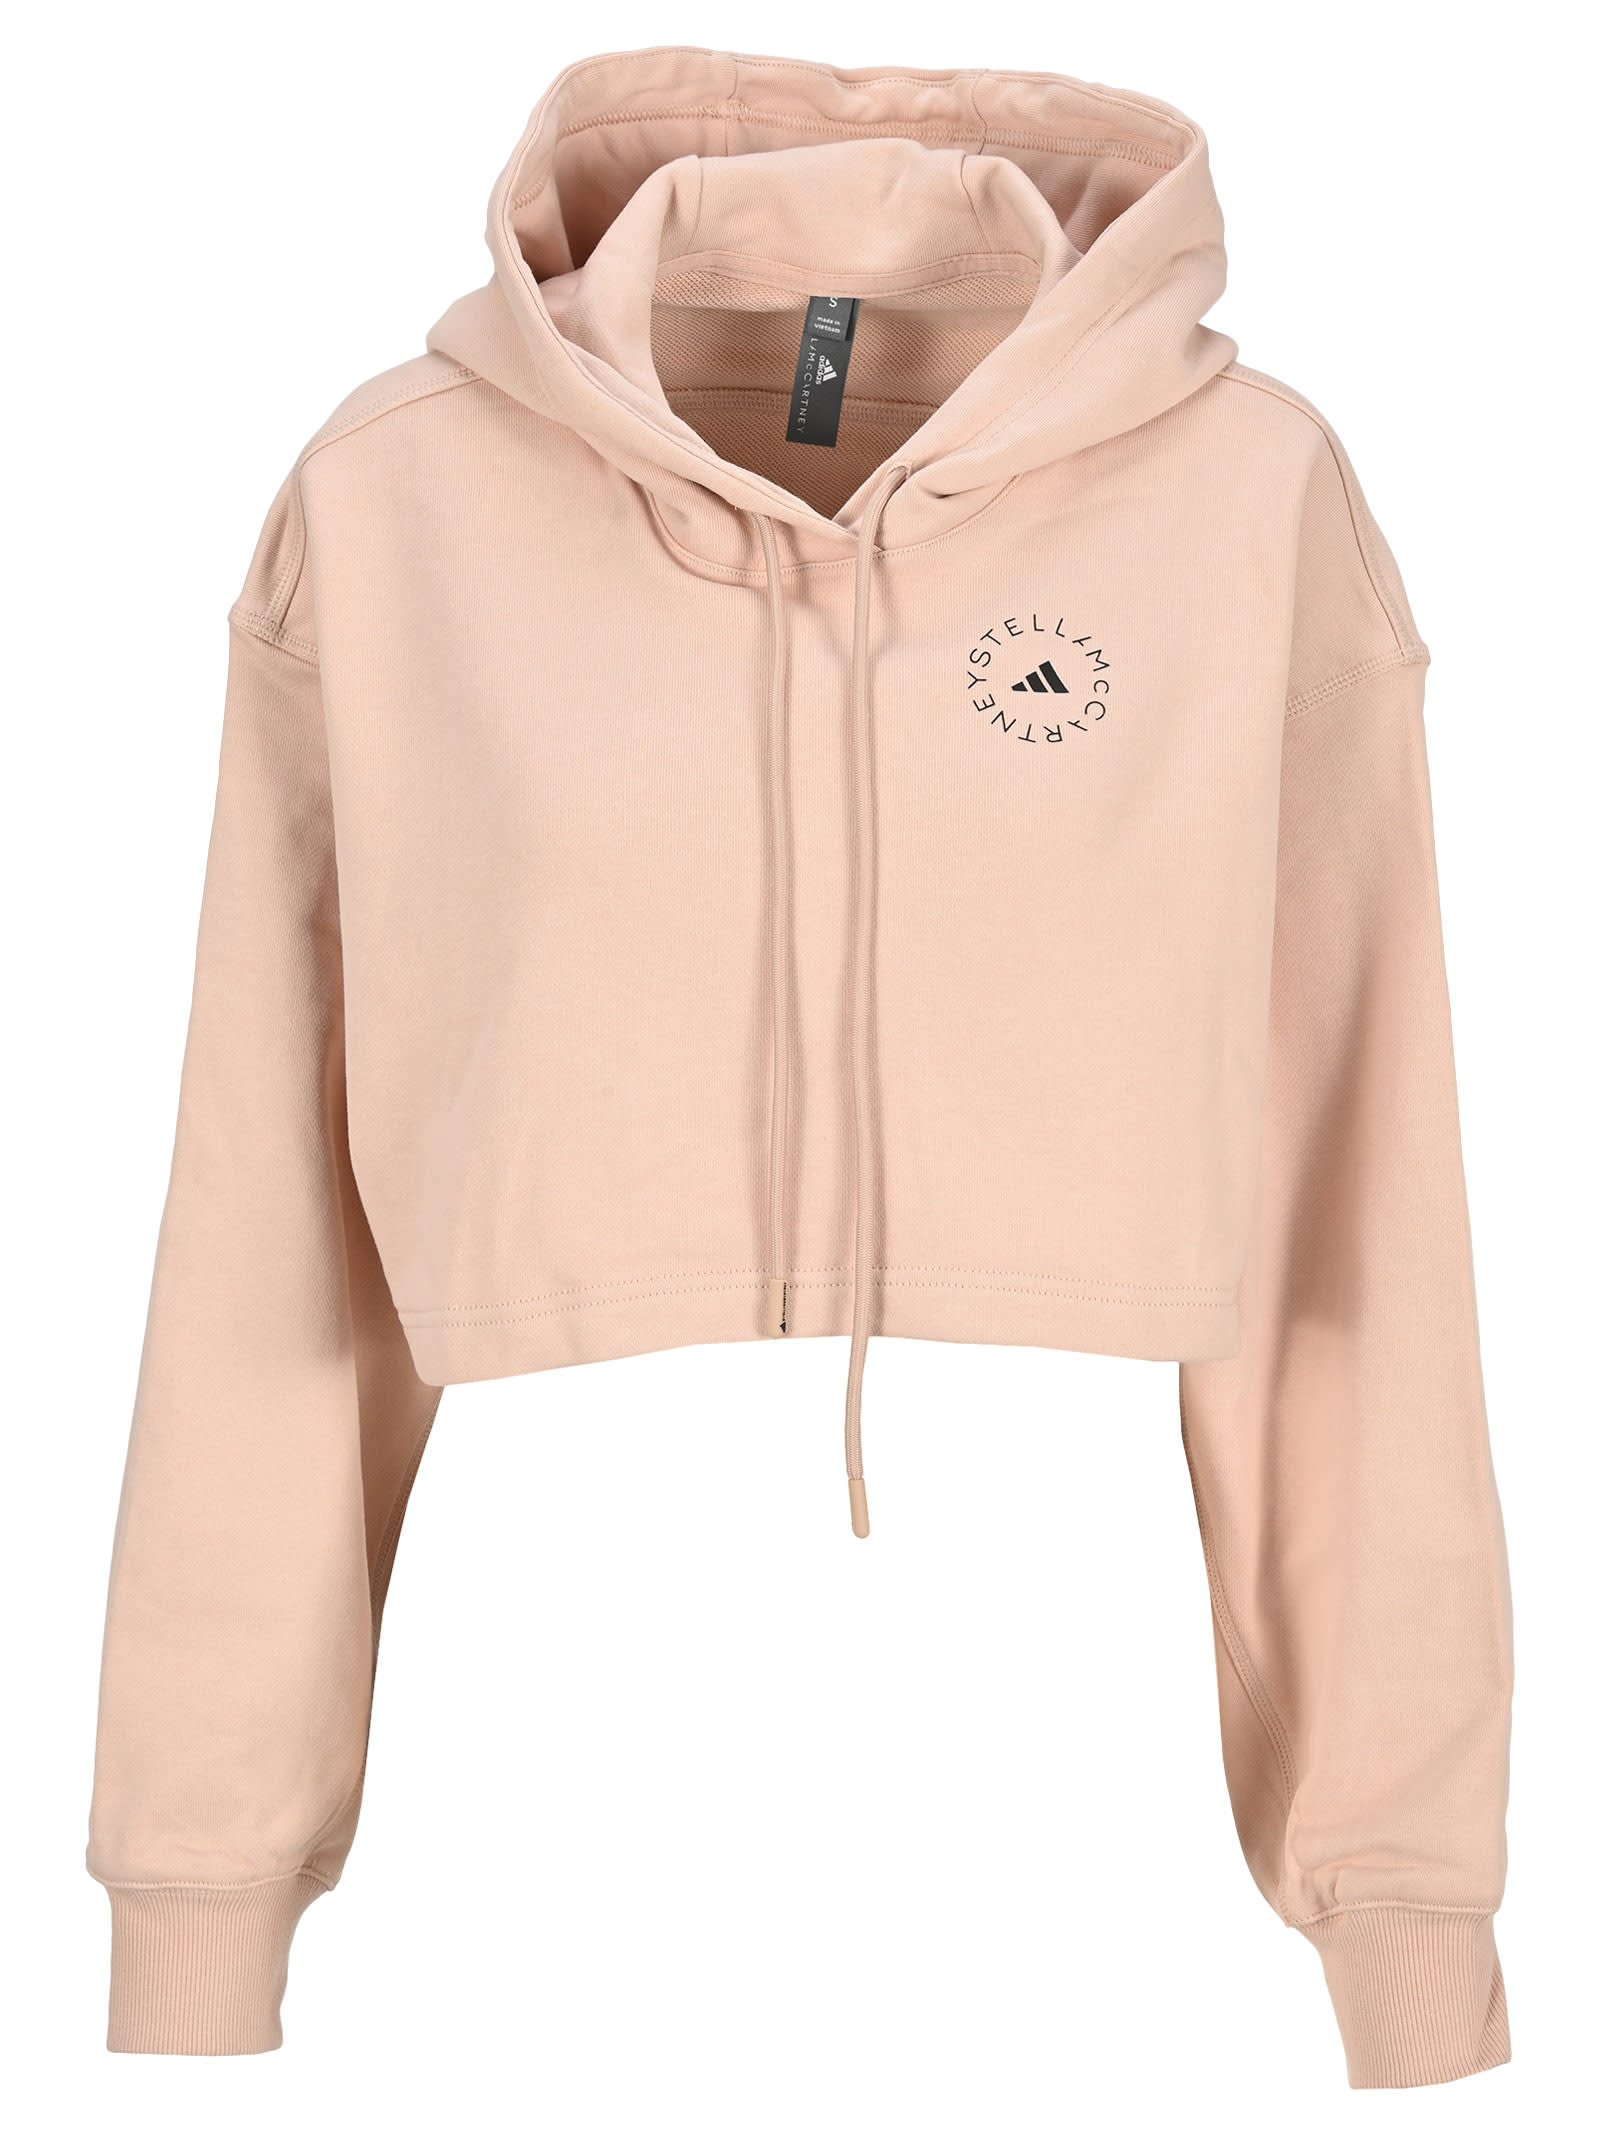 Adidas By Stella Mccartney Rose Crop Hoodie